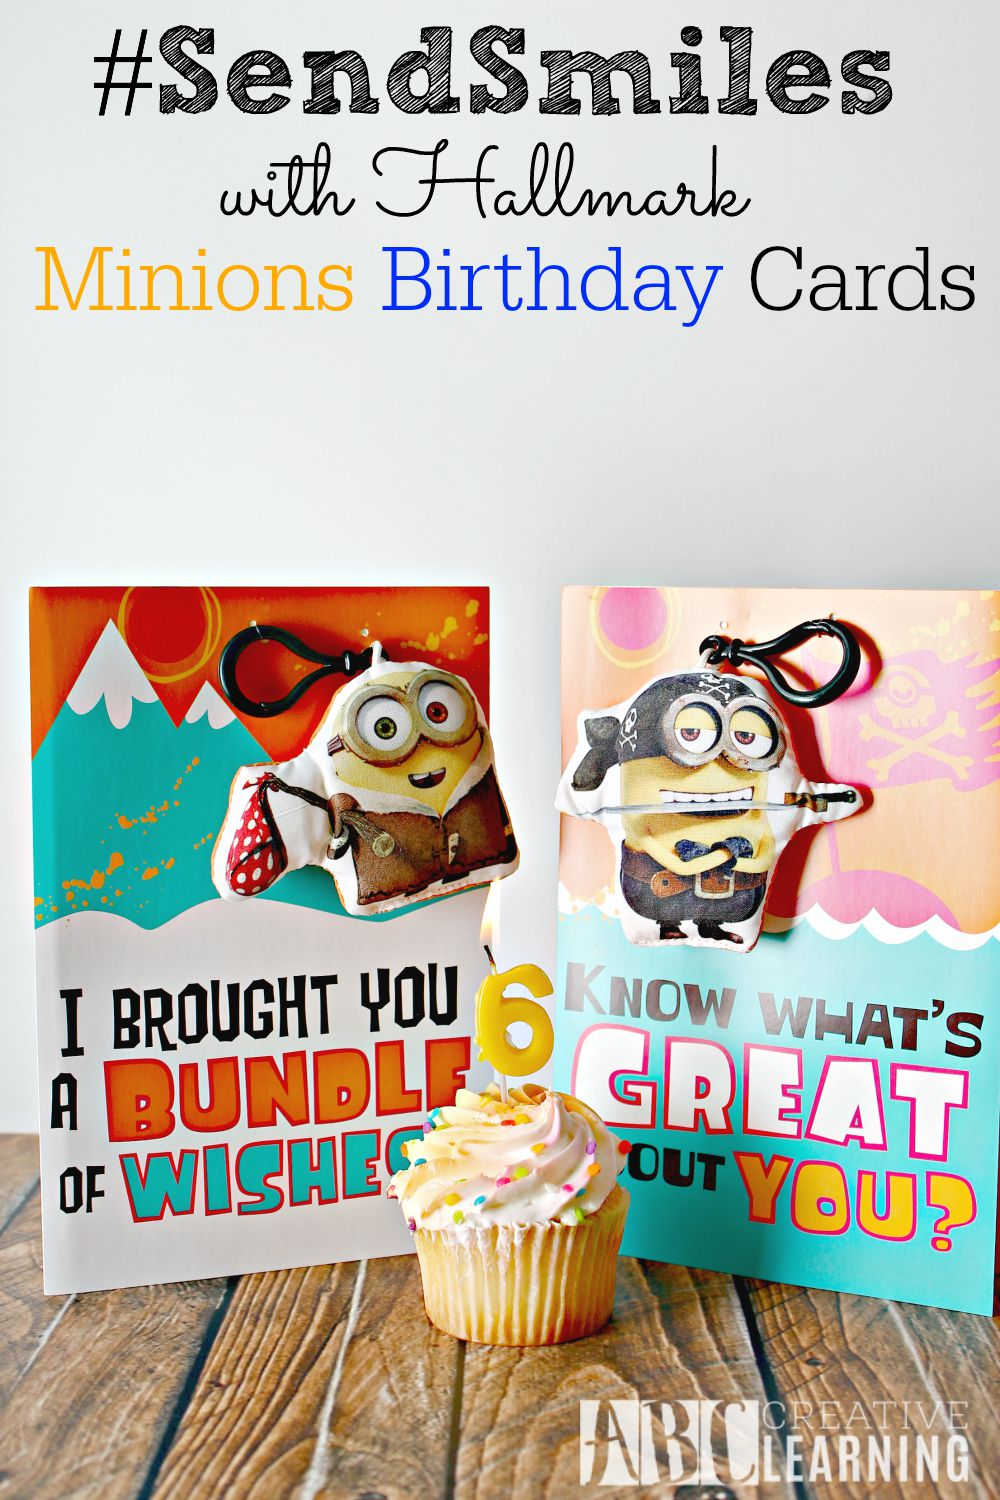 Easy Budget Friendly Birthday and Celebration Card Organizer #SendSmiles